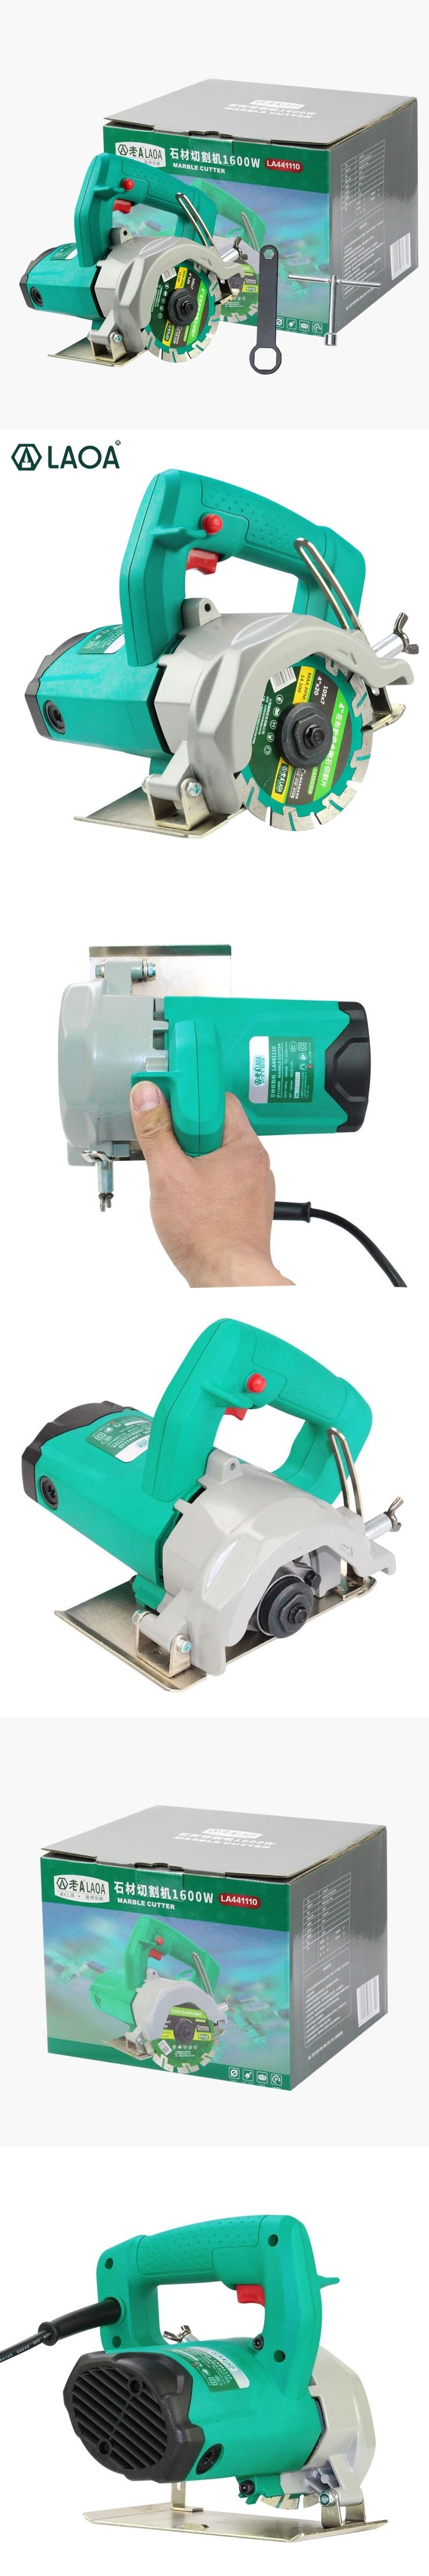 LAOA New product 1600W electric cutting machine electric saw for cutting wood,marble,brick,concrete